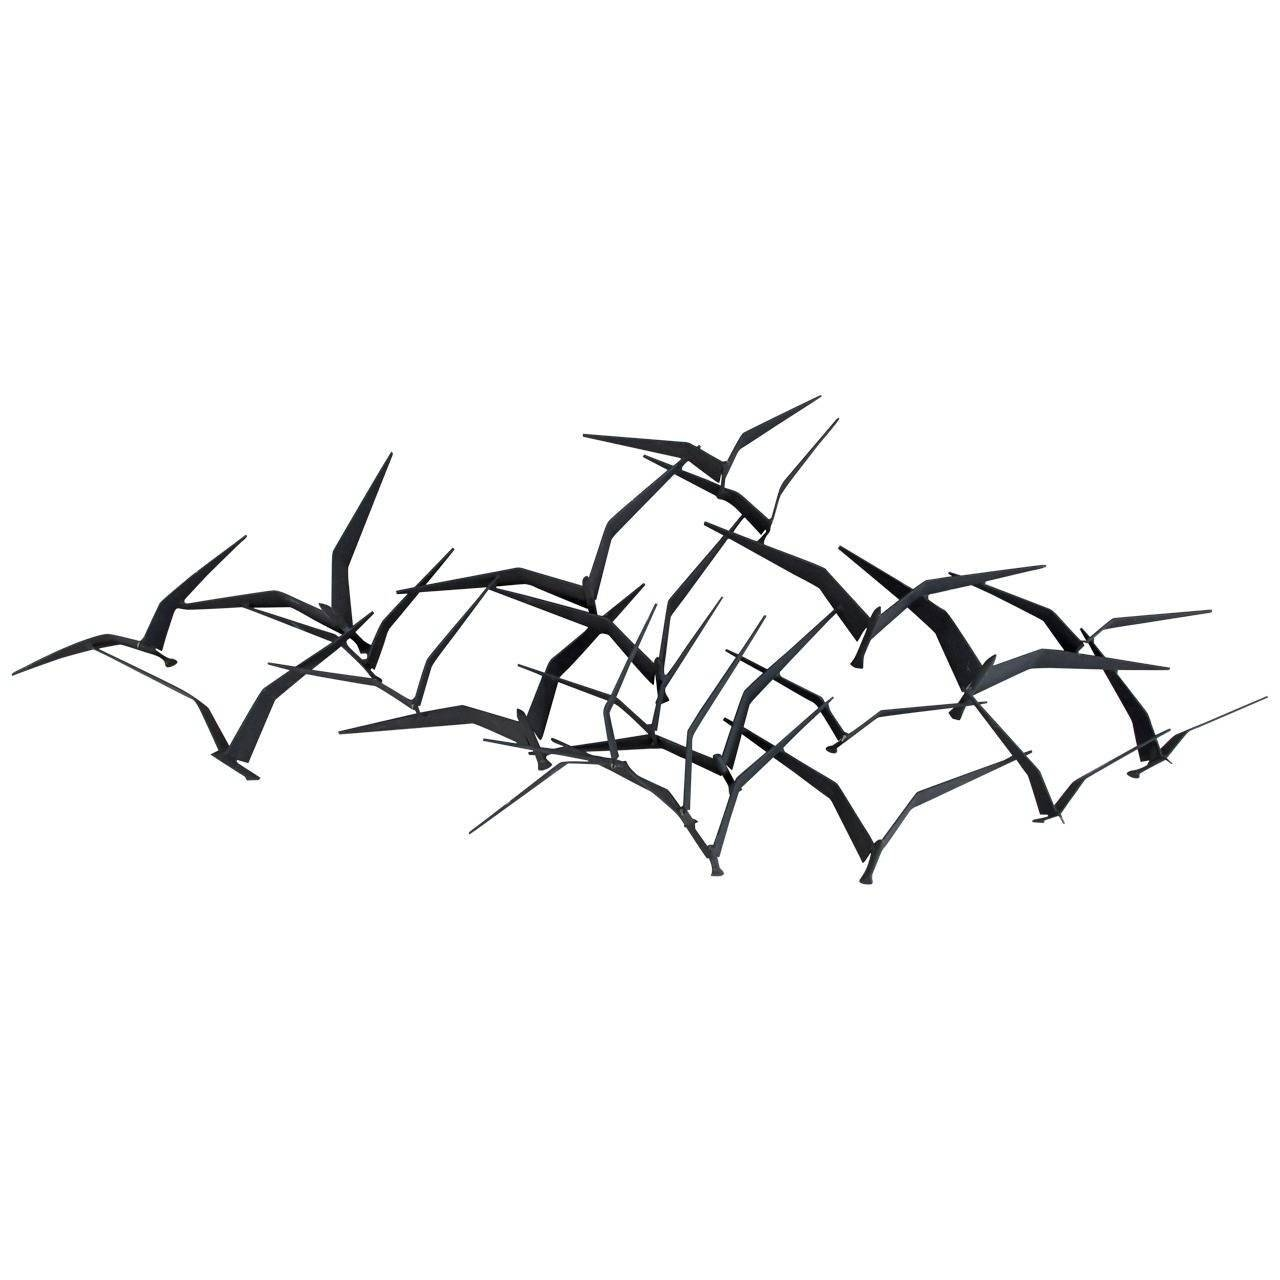 Birds In Flight Metal Wall Artcurtis Jere At 1stdibs Within Newest Birds On A Branch Metal Wall Art (View 16 of 20)